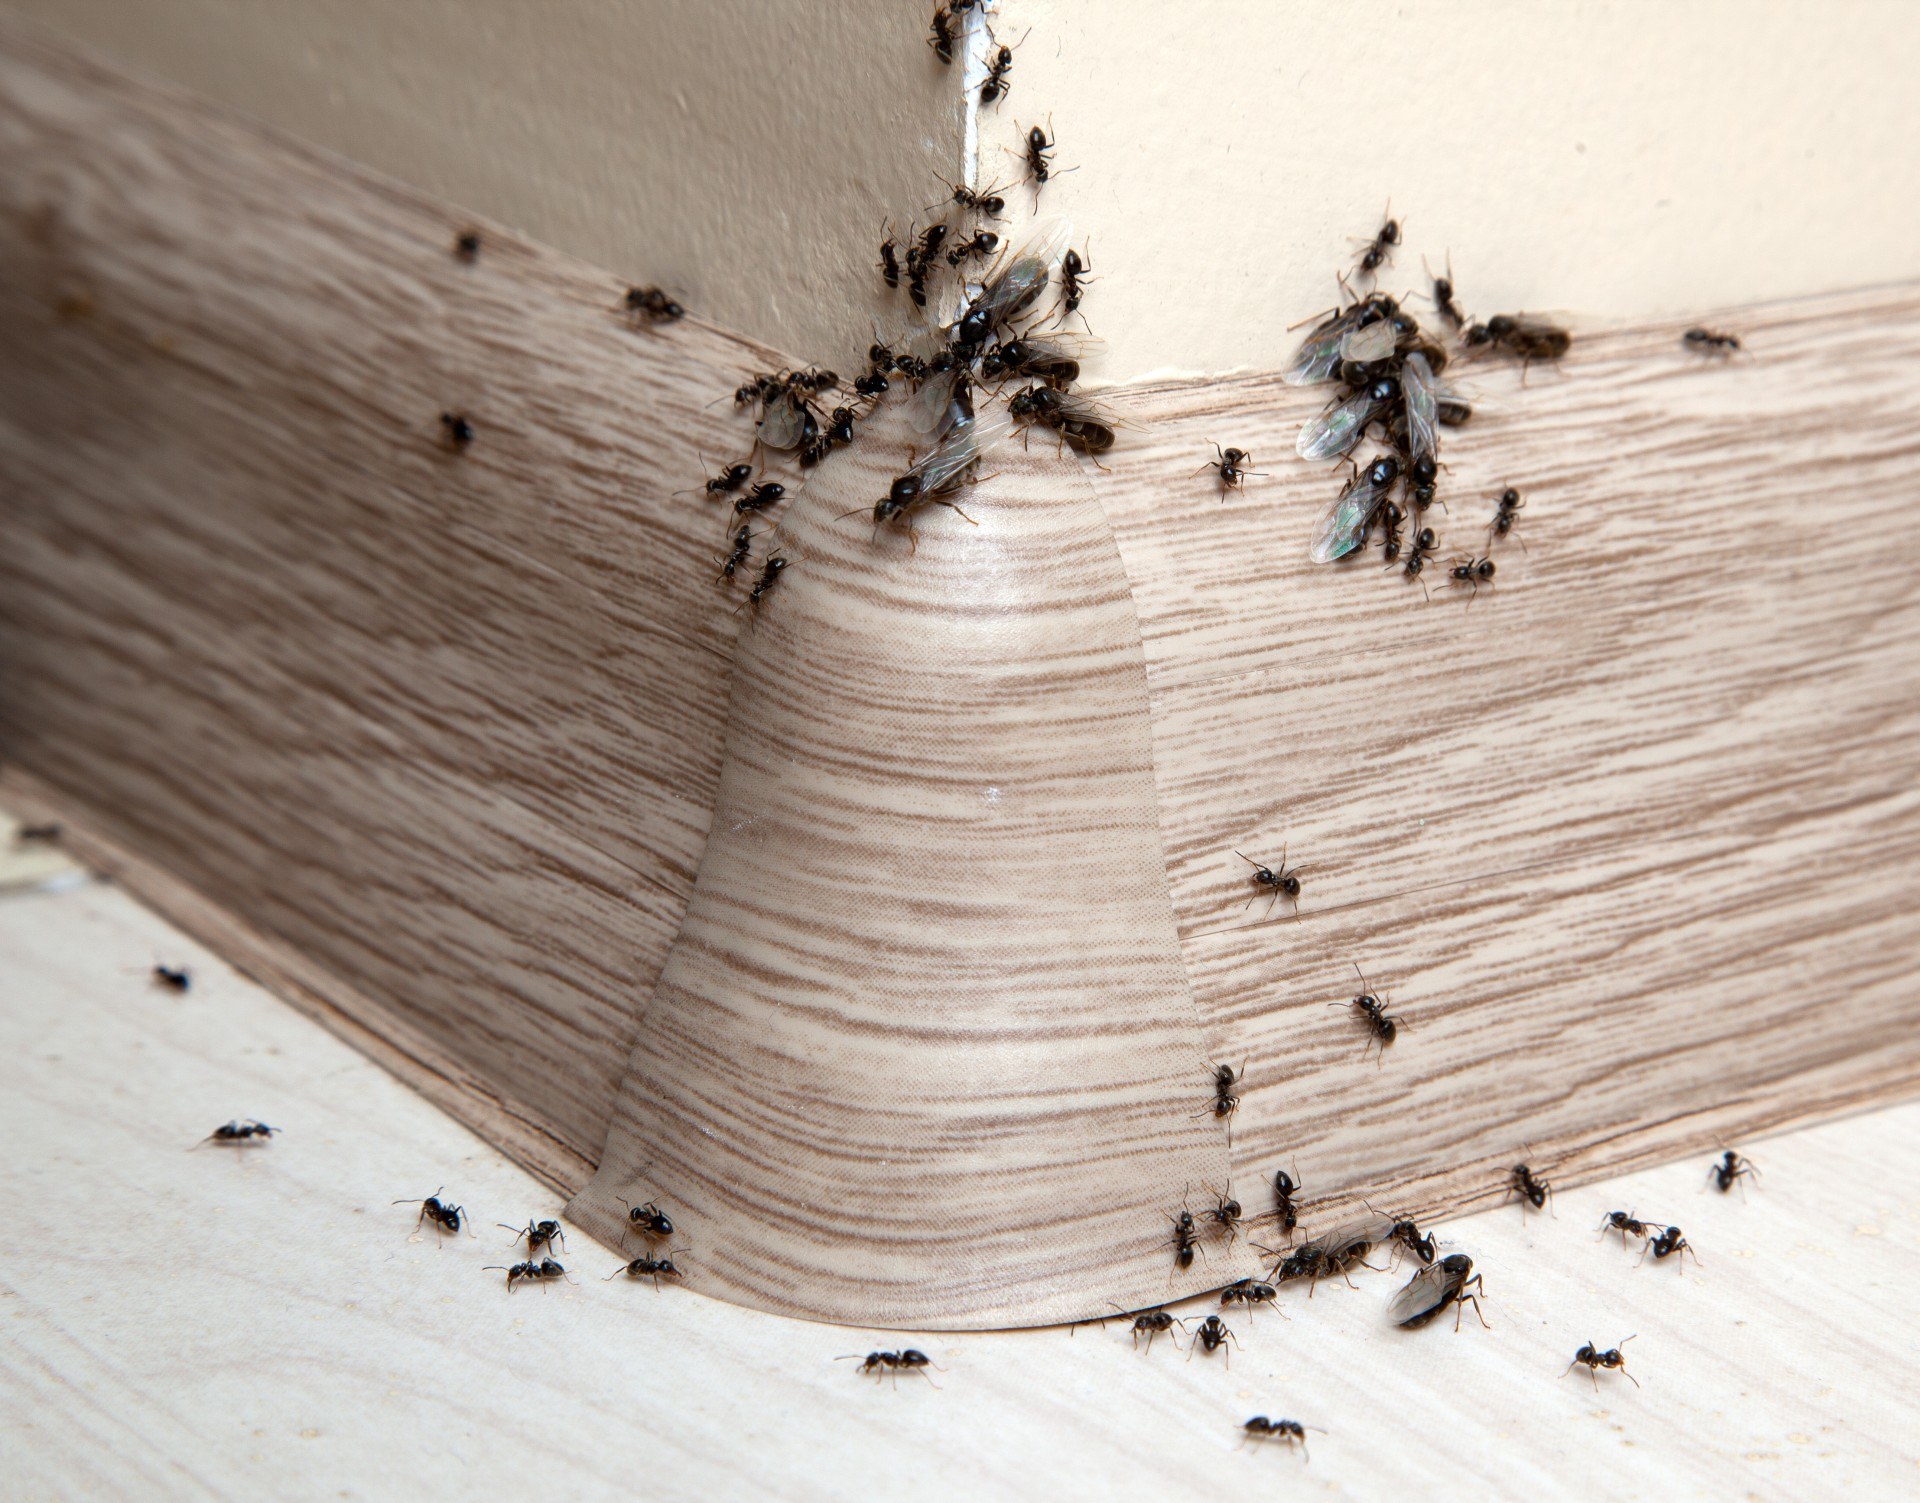 Ant Infestation, Pest Control in East Ham, Beckton, E6. Call Now 020 8166 9746